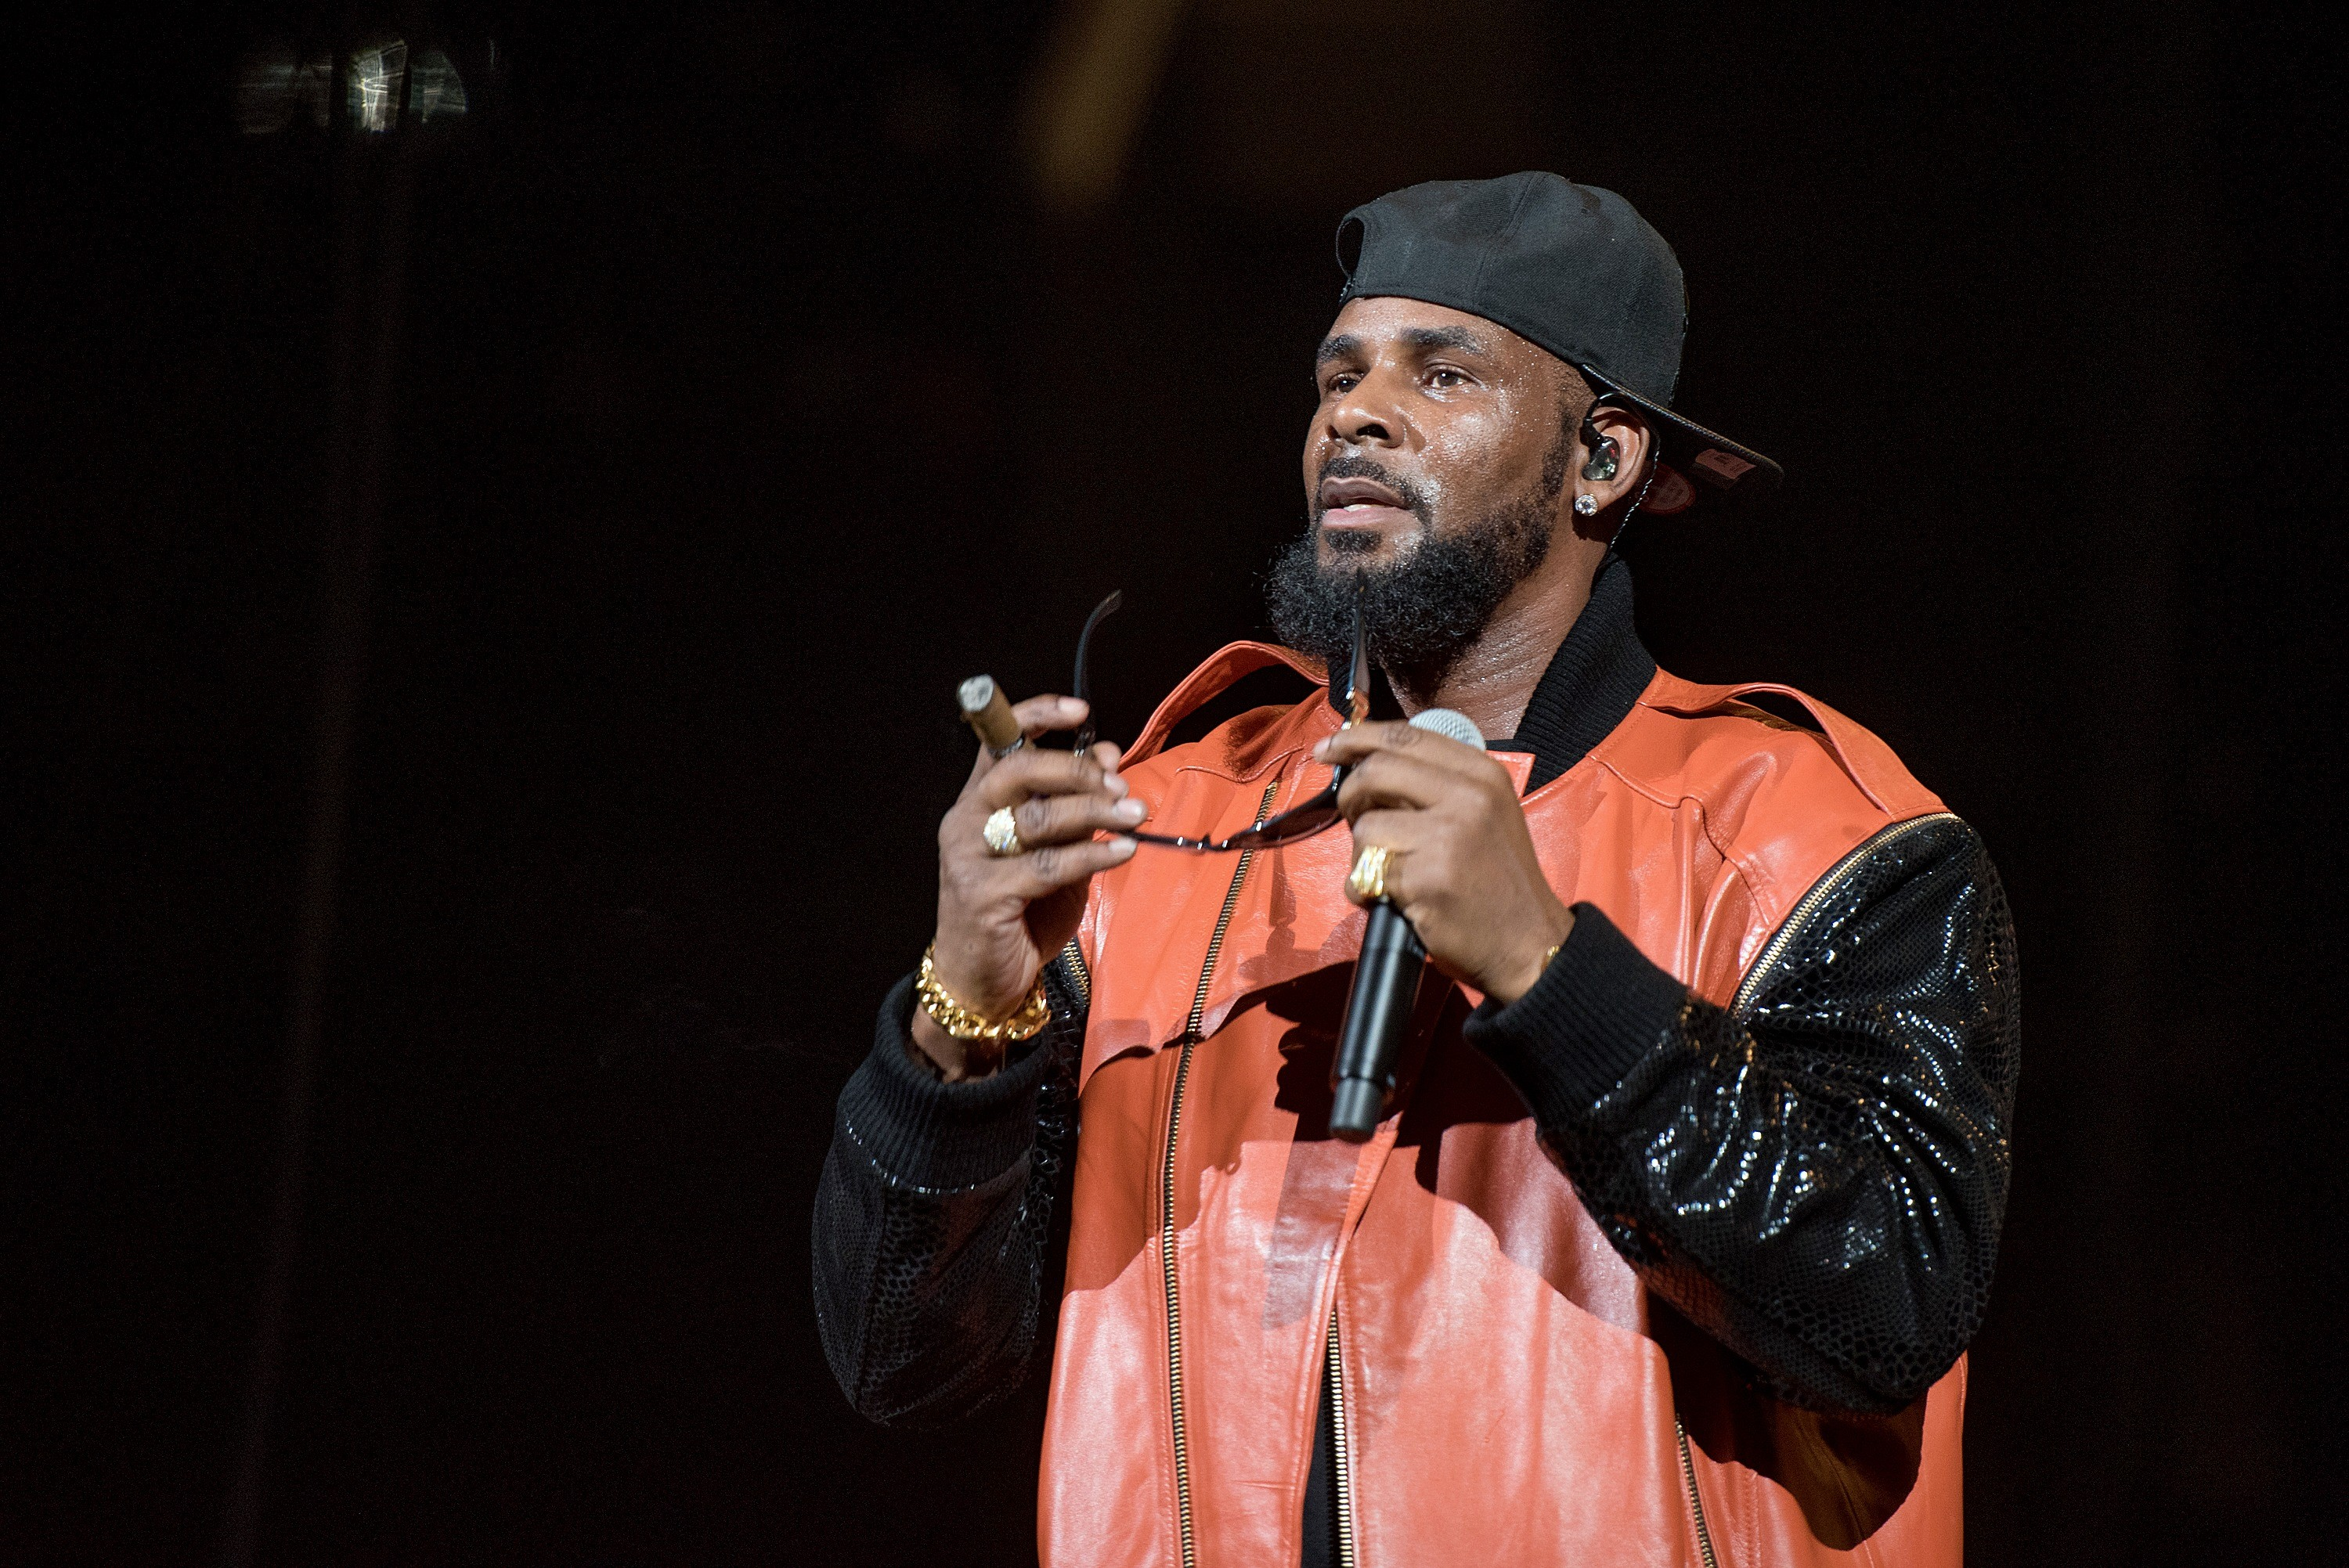 lifetime greenlights documentary series and movie on R Kelly abuse